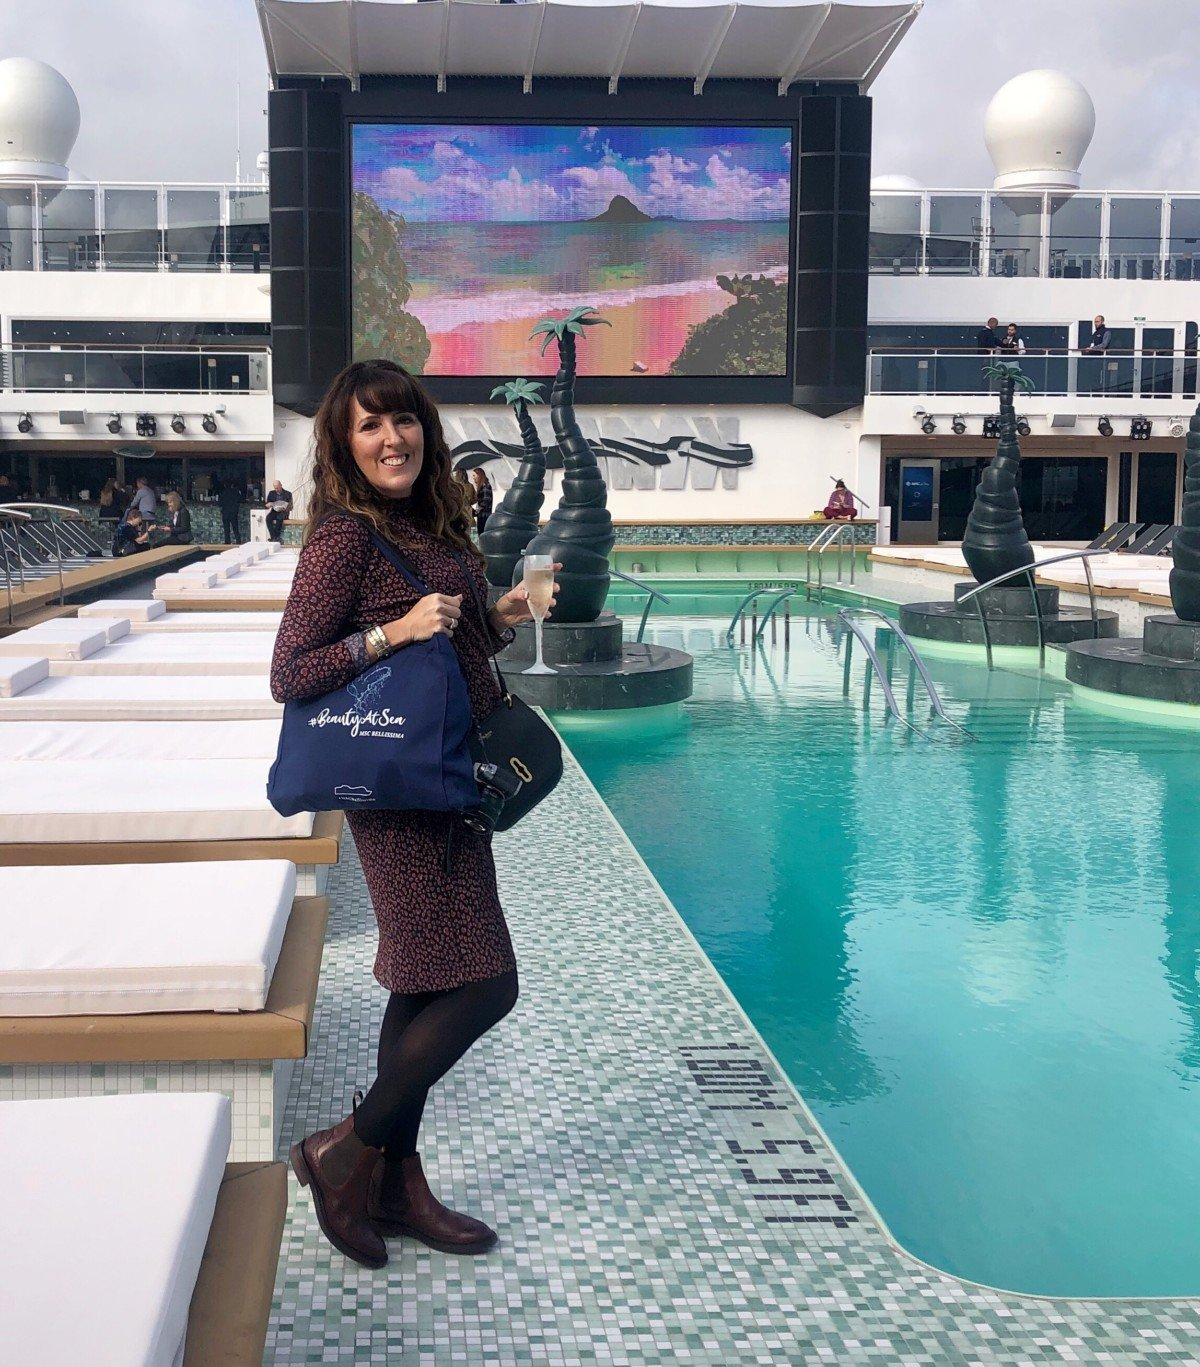 MSC Bellissima review and naming ceremony